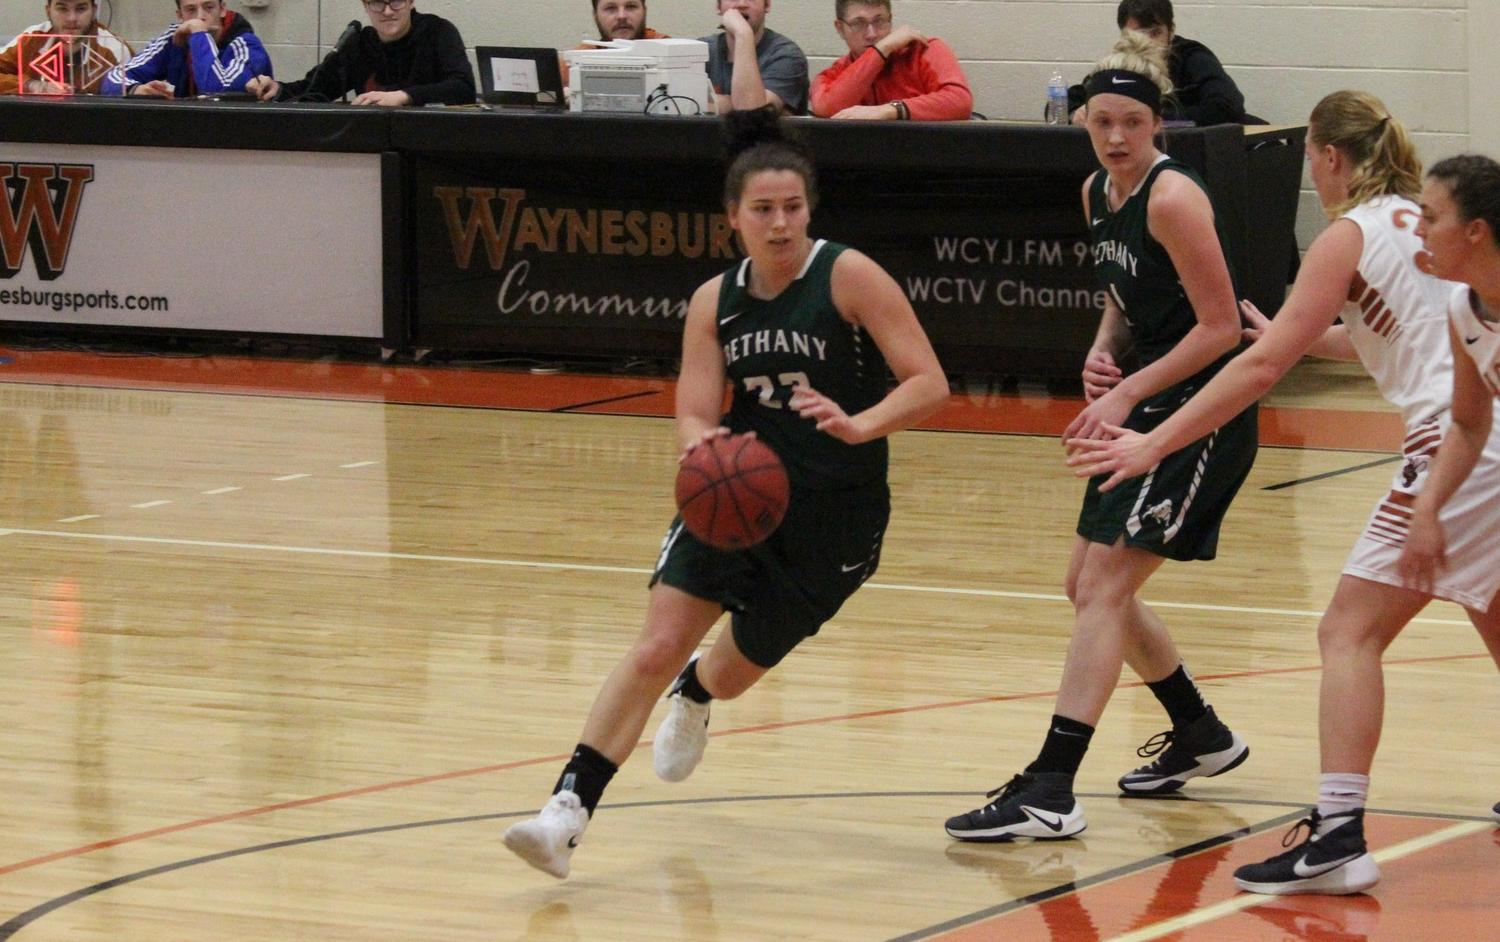 Last-second shot sinks Bison at Waynesburg, 71-70